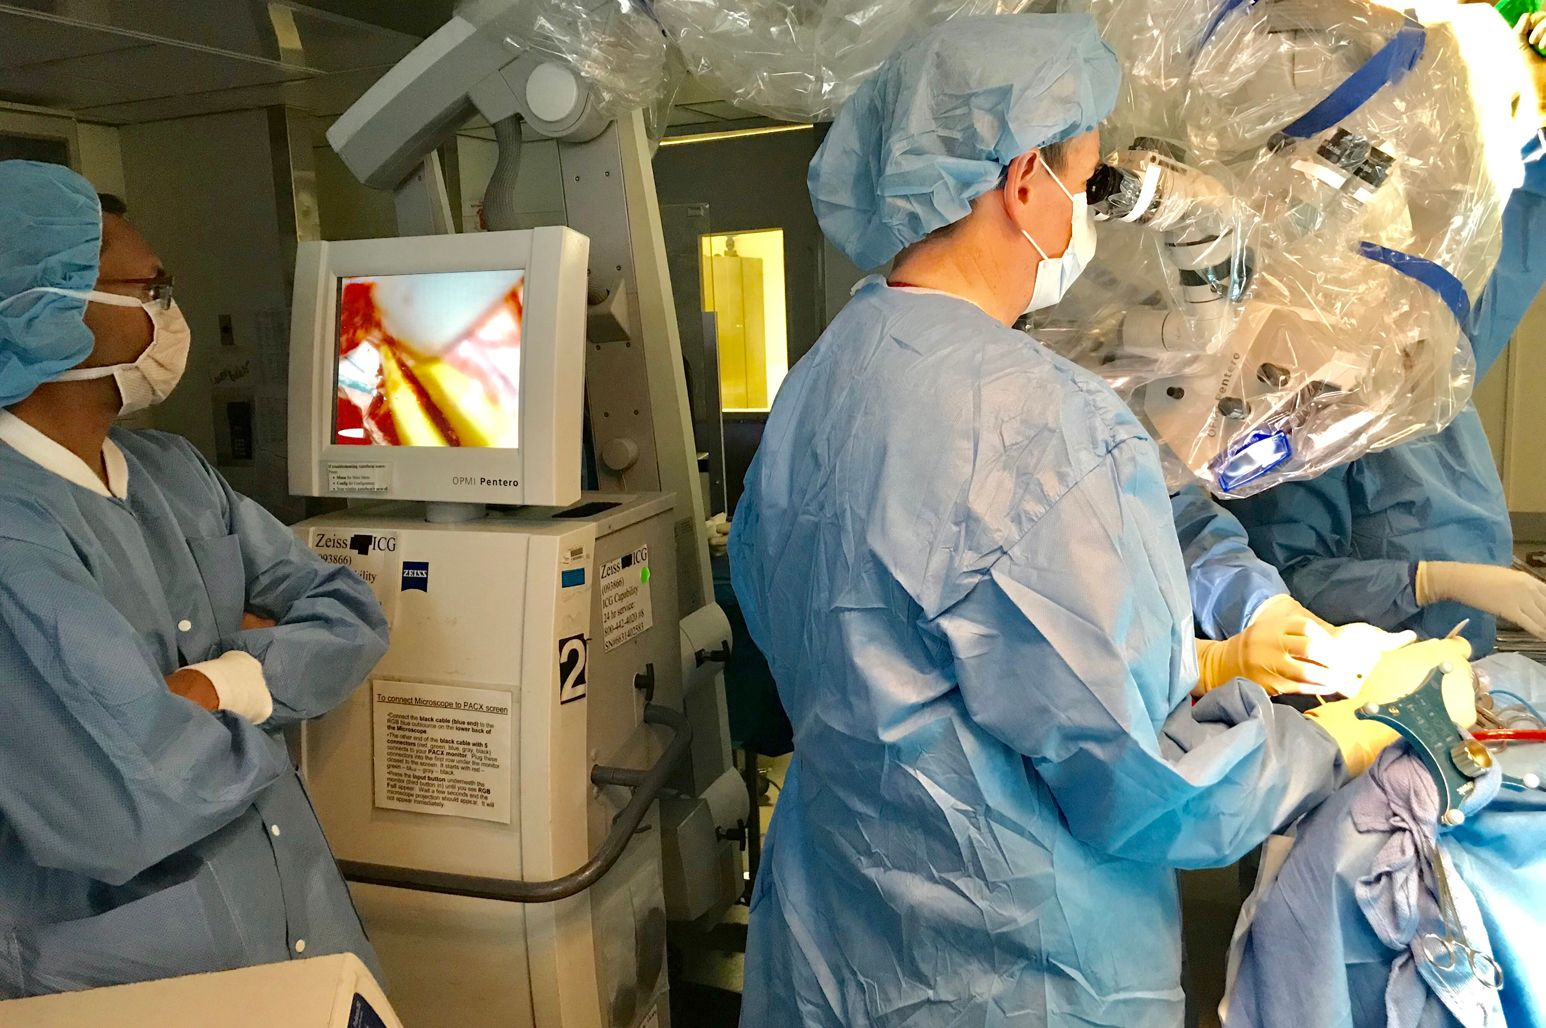 Michael Schulder, MD, and colleagues performed New York State's first intraoperative radiotherapy case to treat aggressive brain cancer.